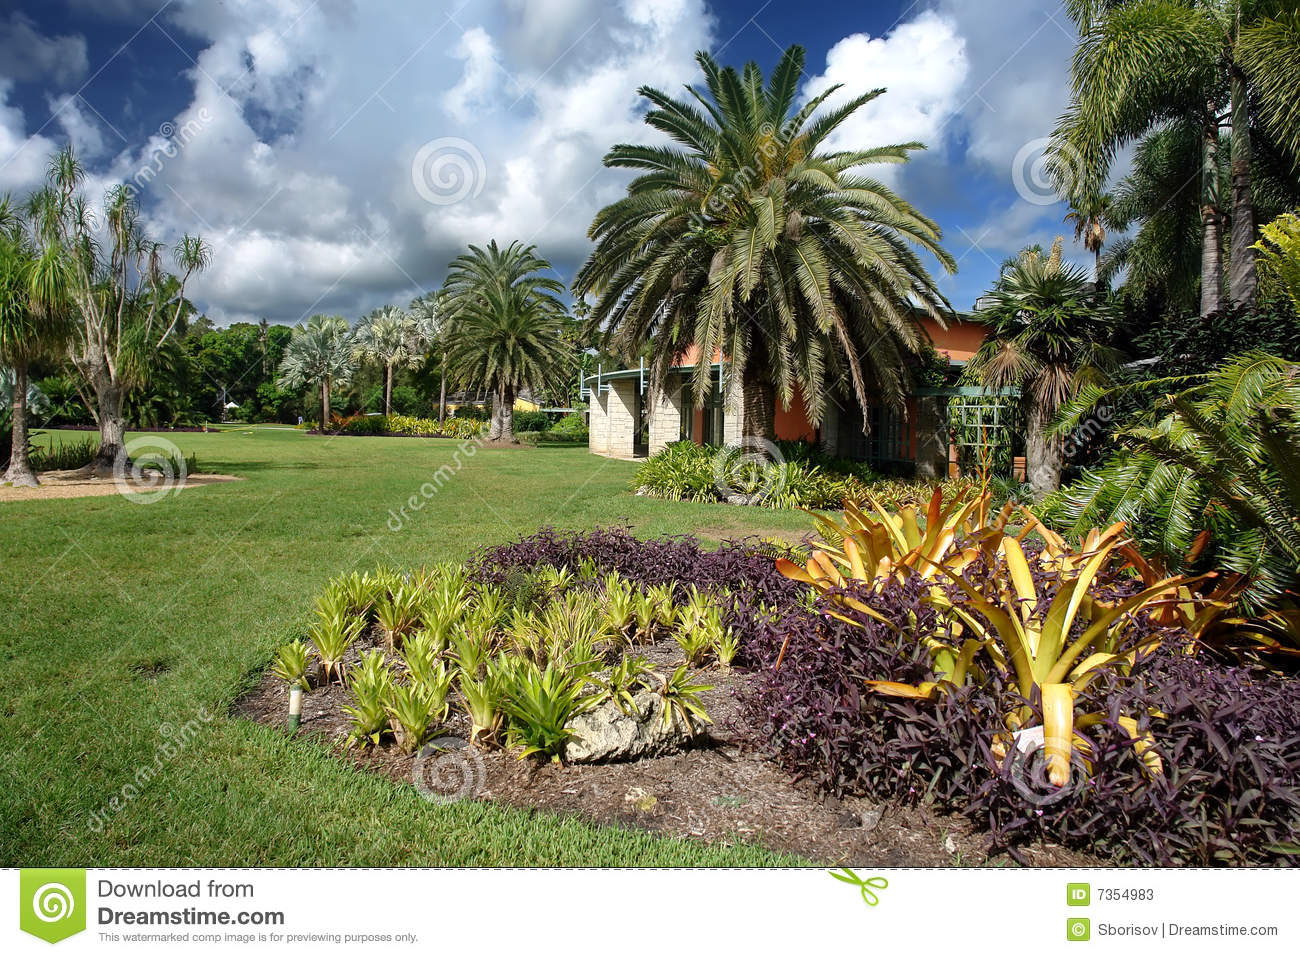 Fairchild Tropical Botanic Garden Stock Photos Image